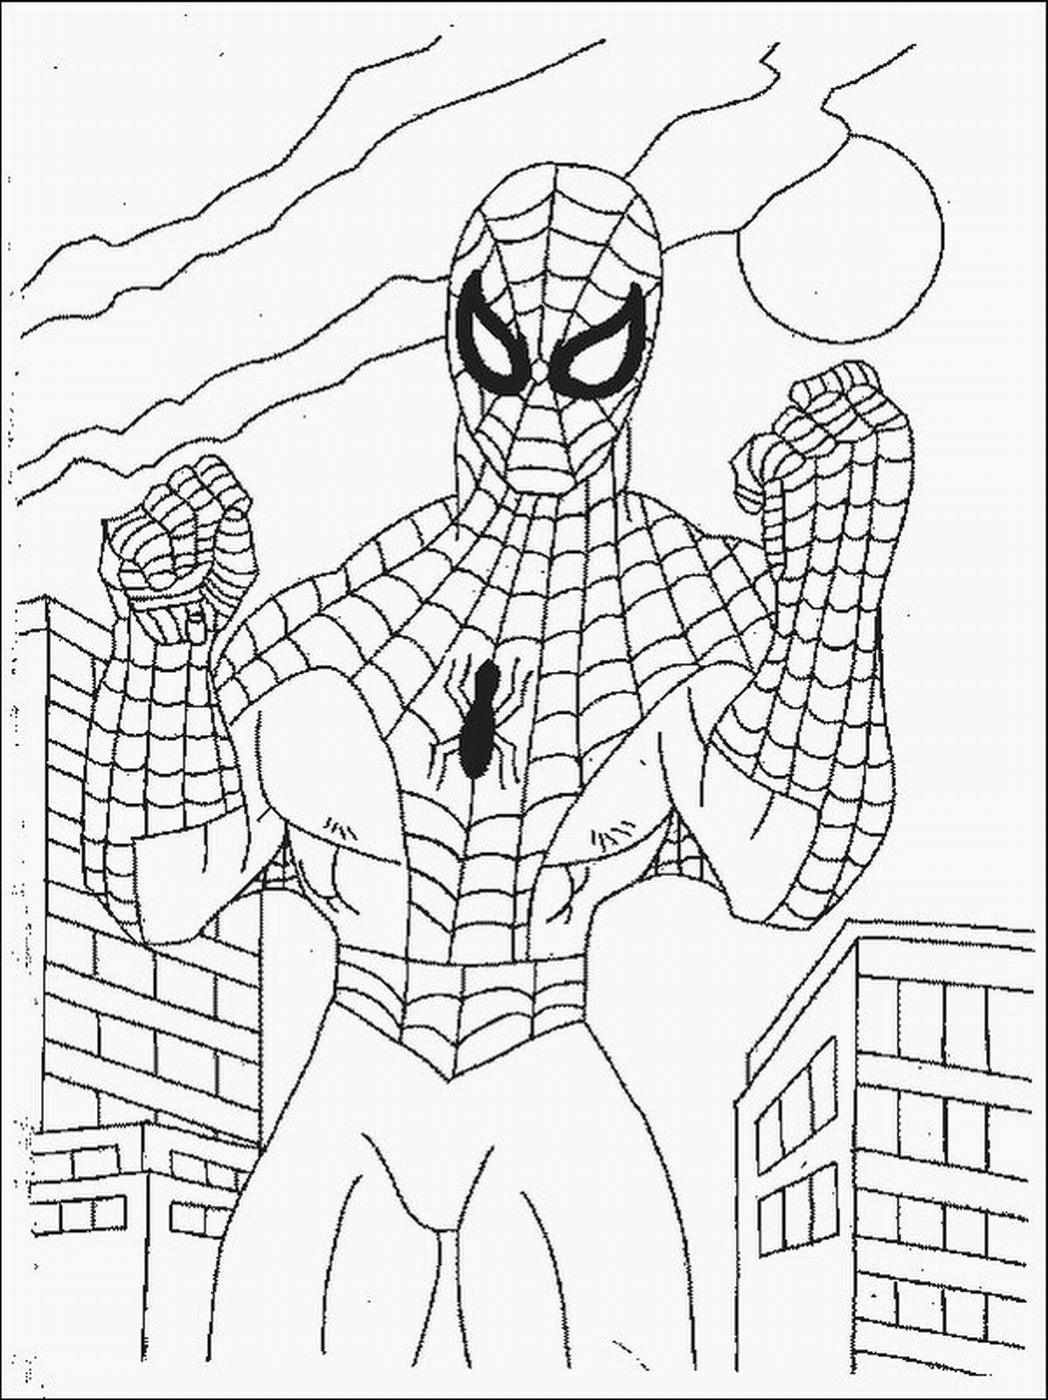 spiderman picture to color spiderman homecoming drawing at getdrawings free download spiderman picture to color